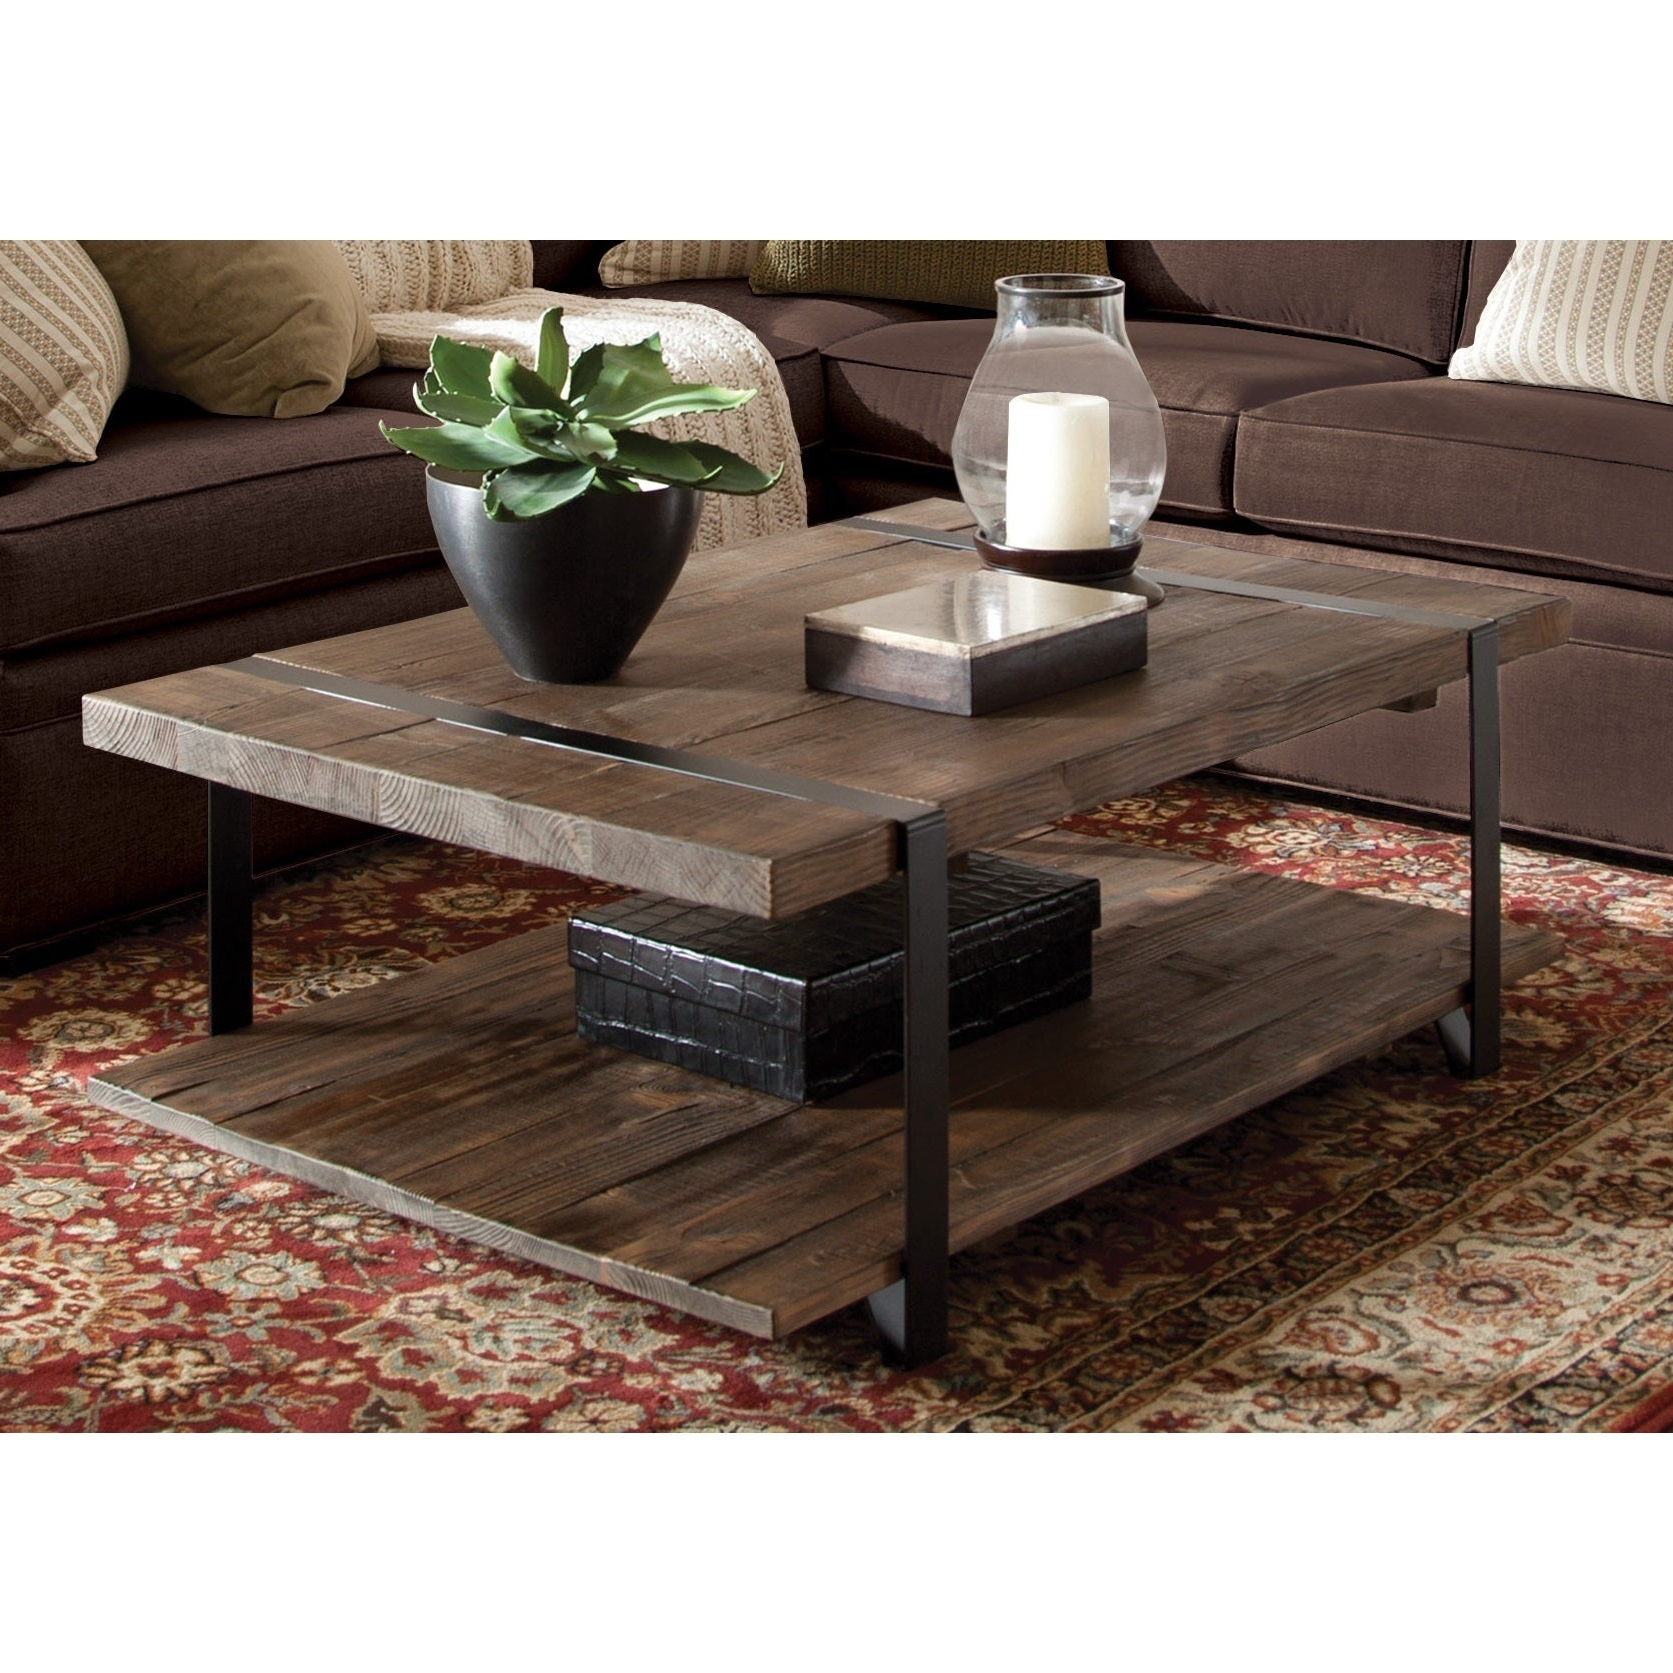 Most Popular Carbon Loft Kenyon Cube Brown Wood Rustic Coffee Tables Throughout Carbon Loft Kenyon Natural Finished Reclaimed Wood Large Coffee Table (View 14 of 20)